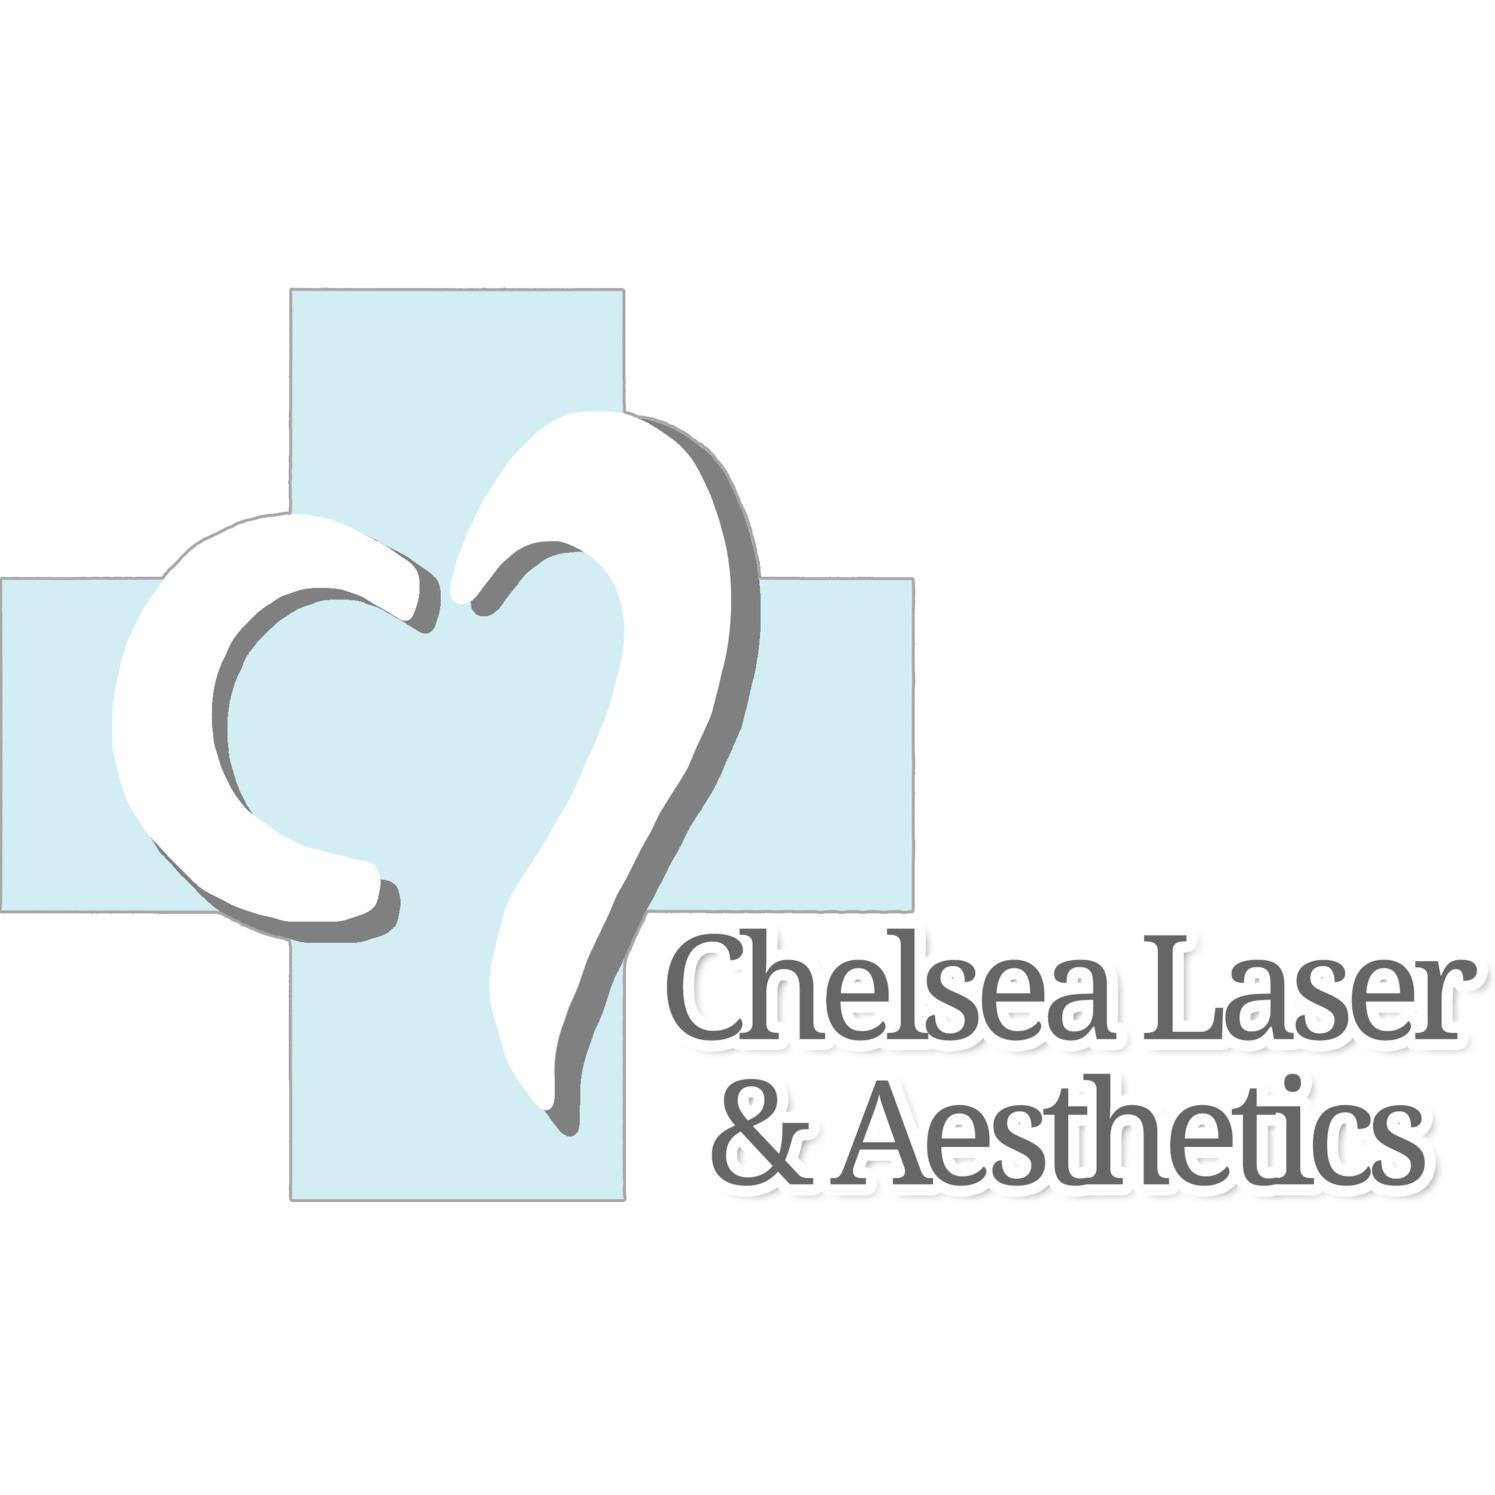 Chelsea Laser and Aesthetics - Chelsea, MI 48118 - (734)475-2921   ShowMeLocal.com